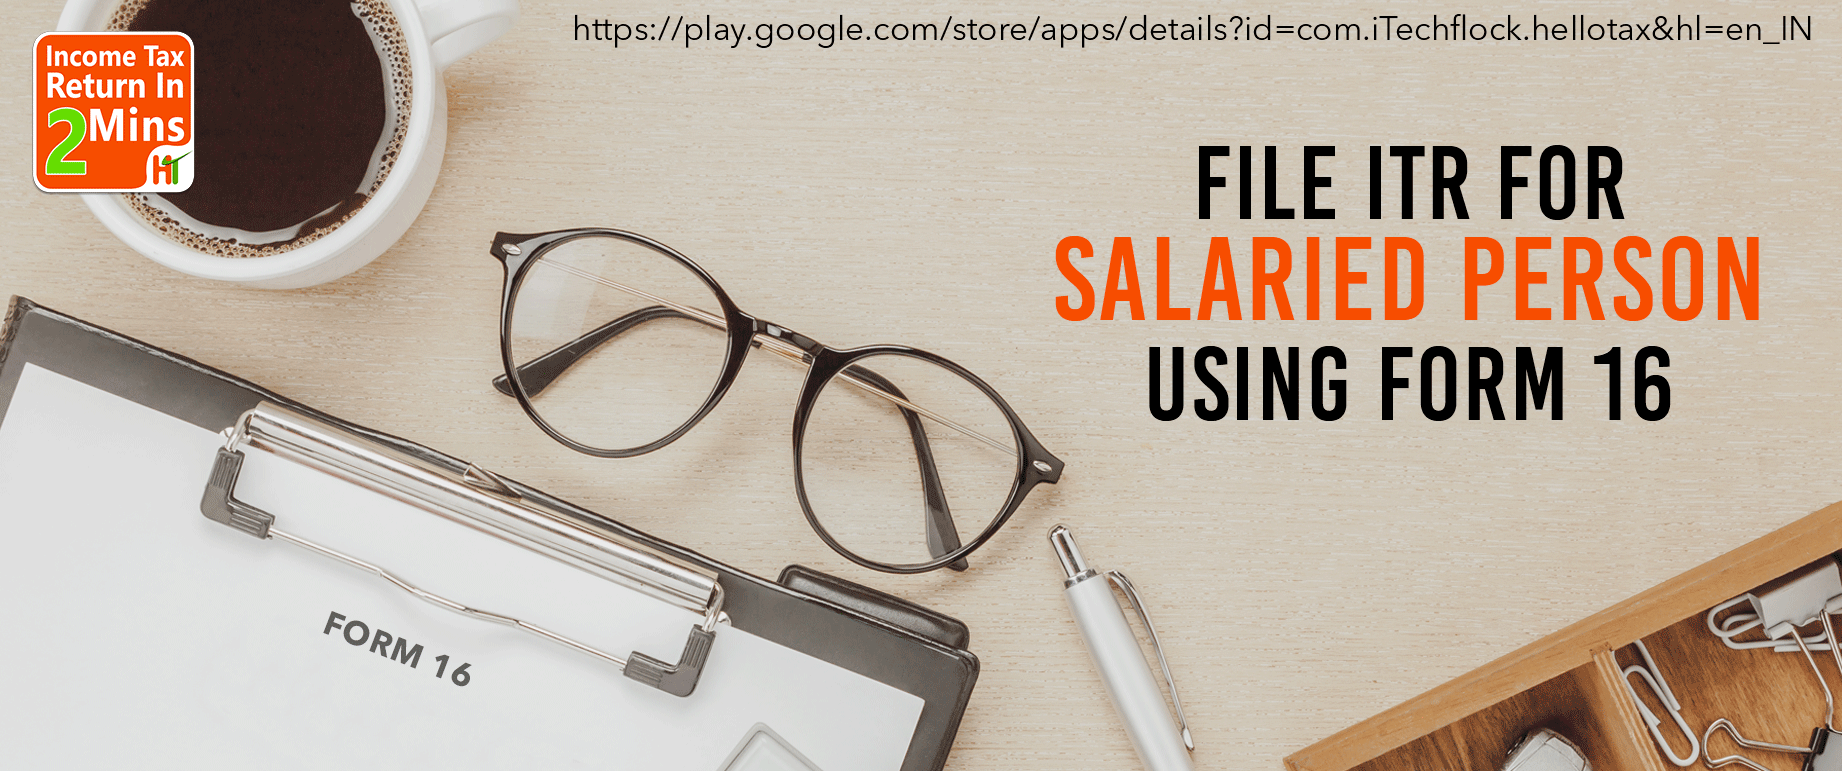 For this Download this app to File ITR for salaried person using